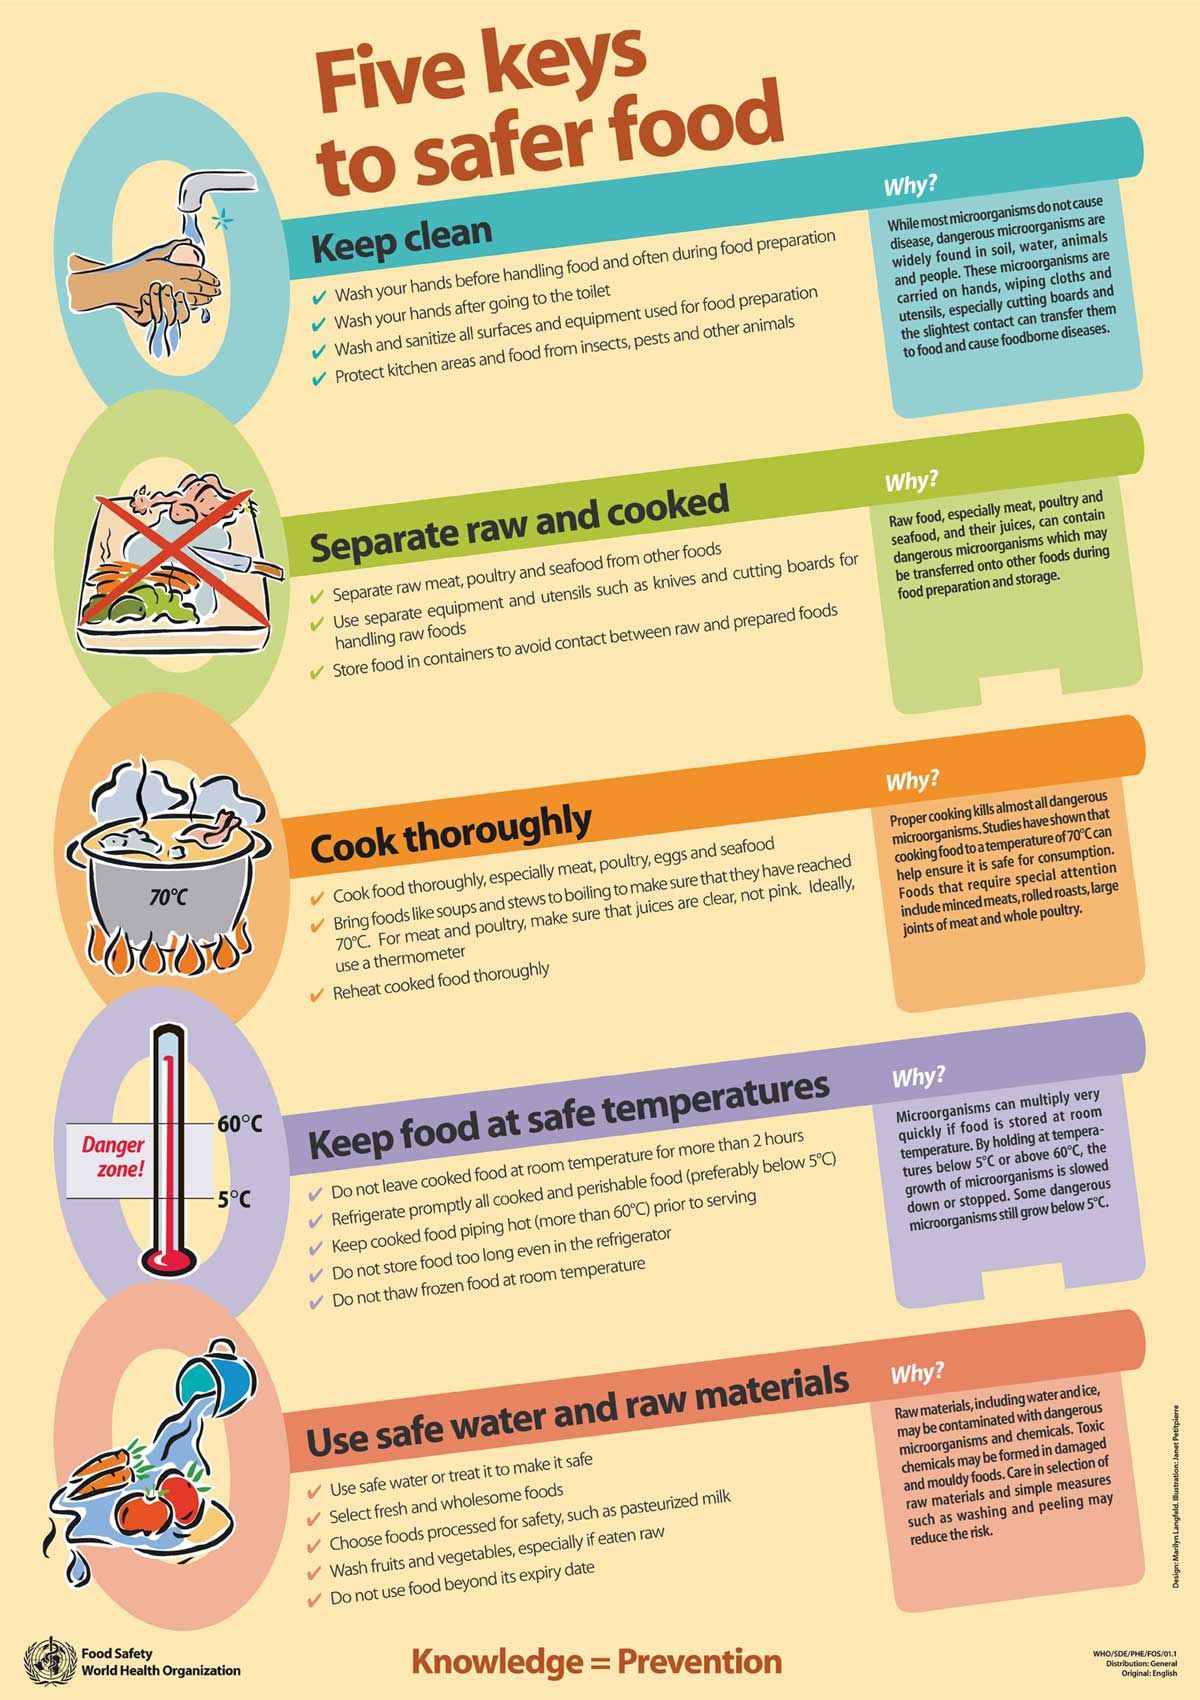 Haccp Küchenhygiene Hygiene And Safety In The Kitchen Poster Szukaj W Google